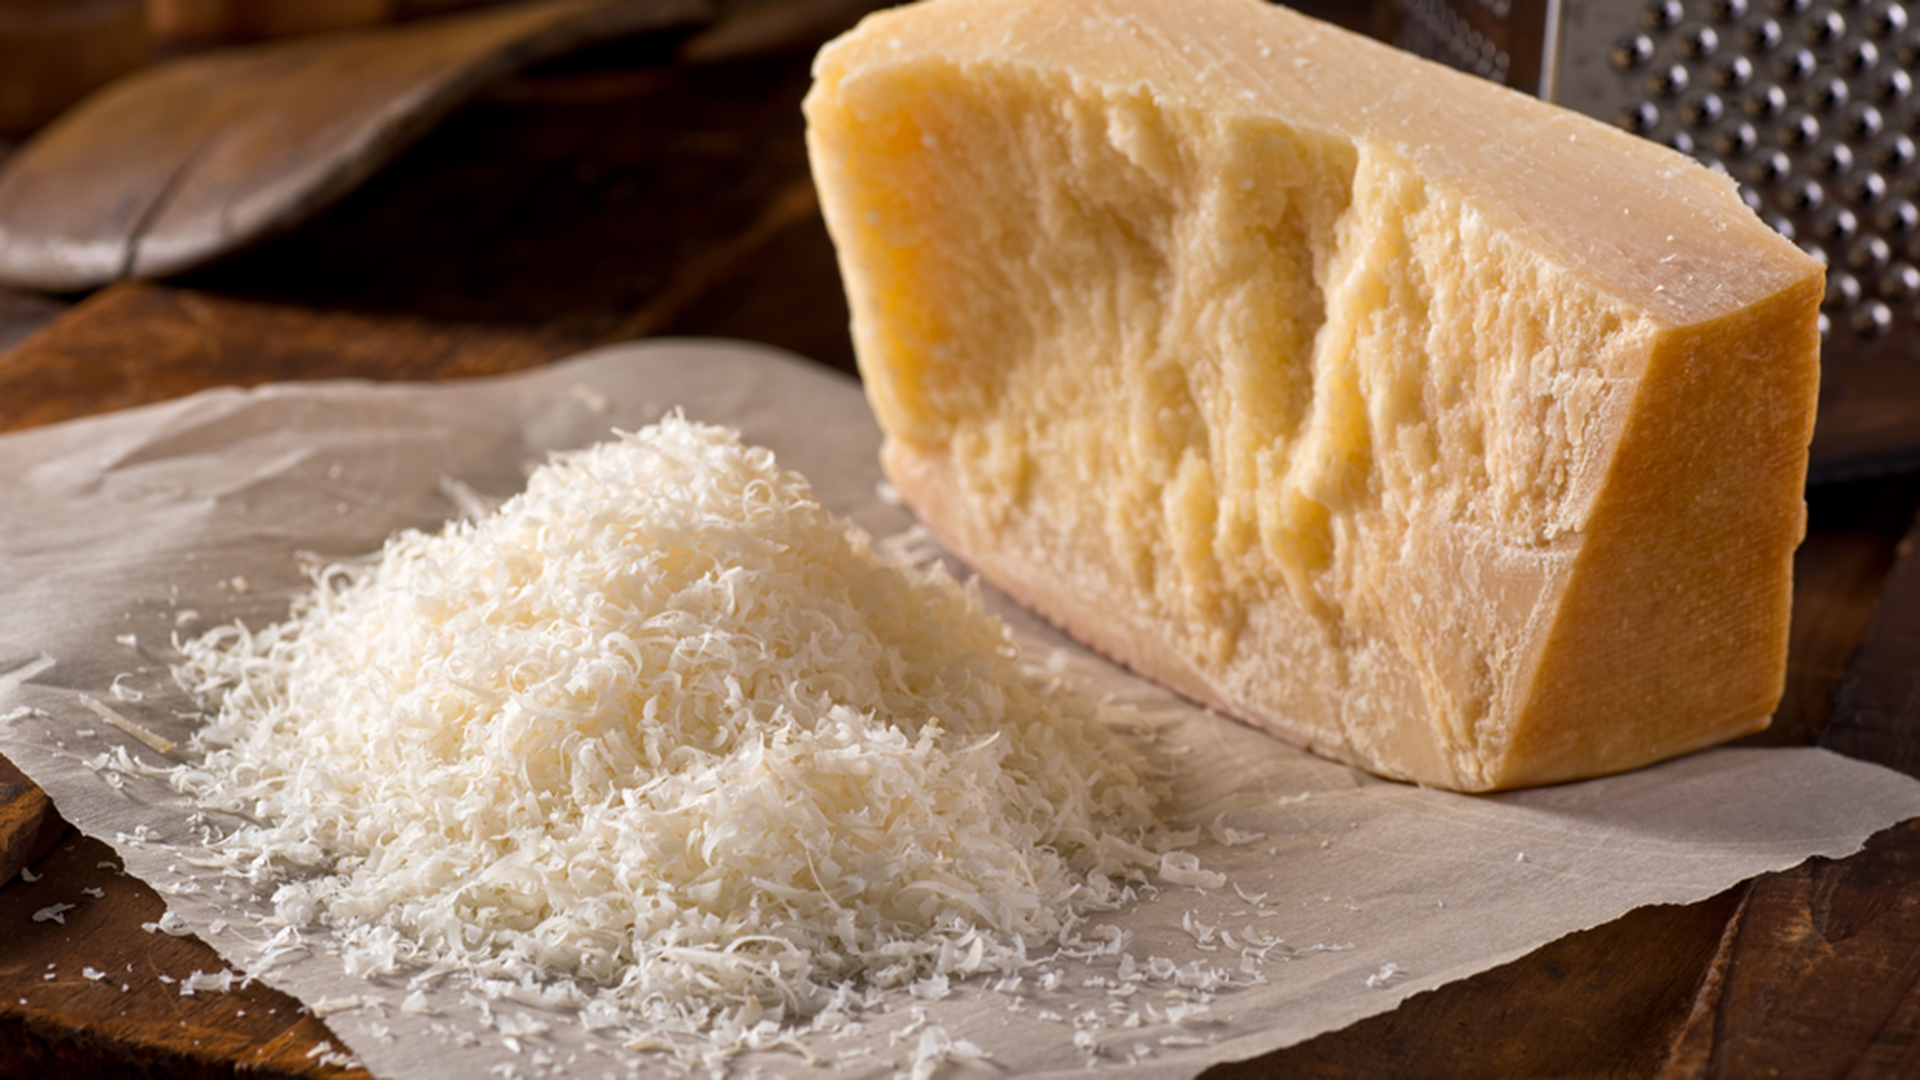 grated-parmesan-today-tease-160217_f9ef7604016457433d18c10f422ffcde.jpg